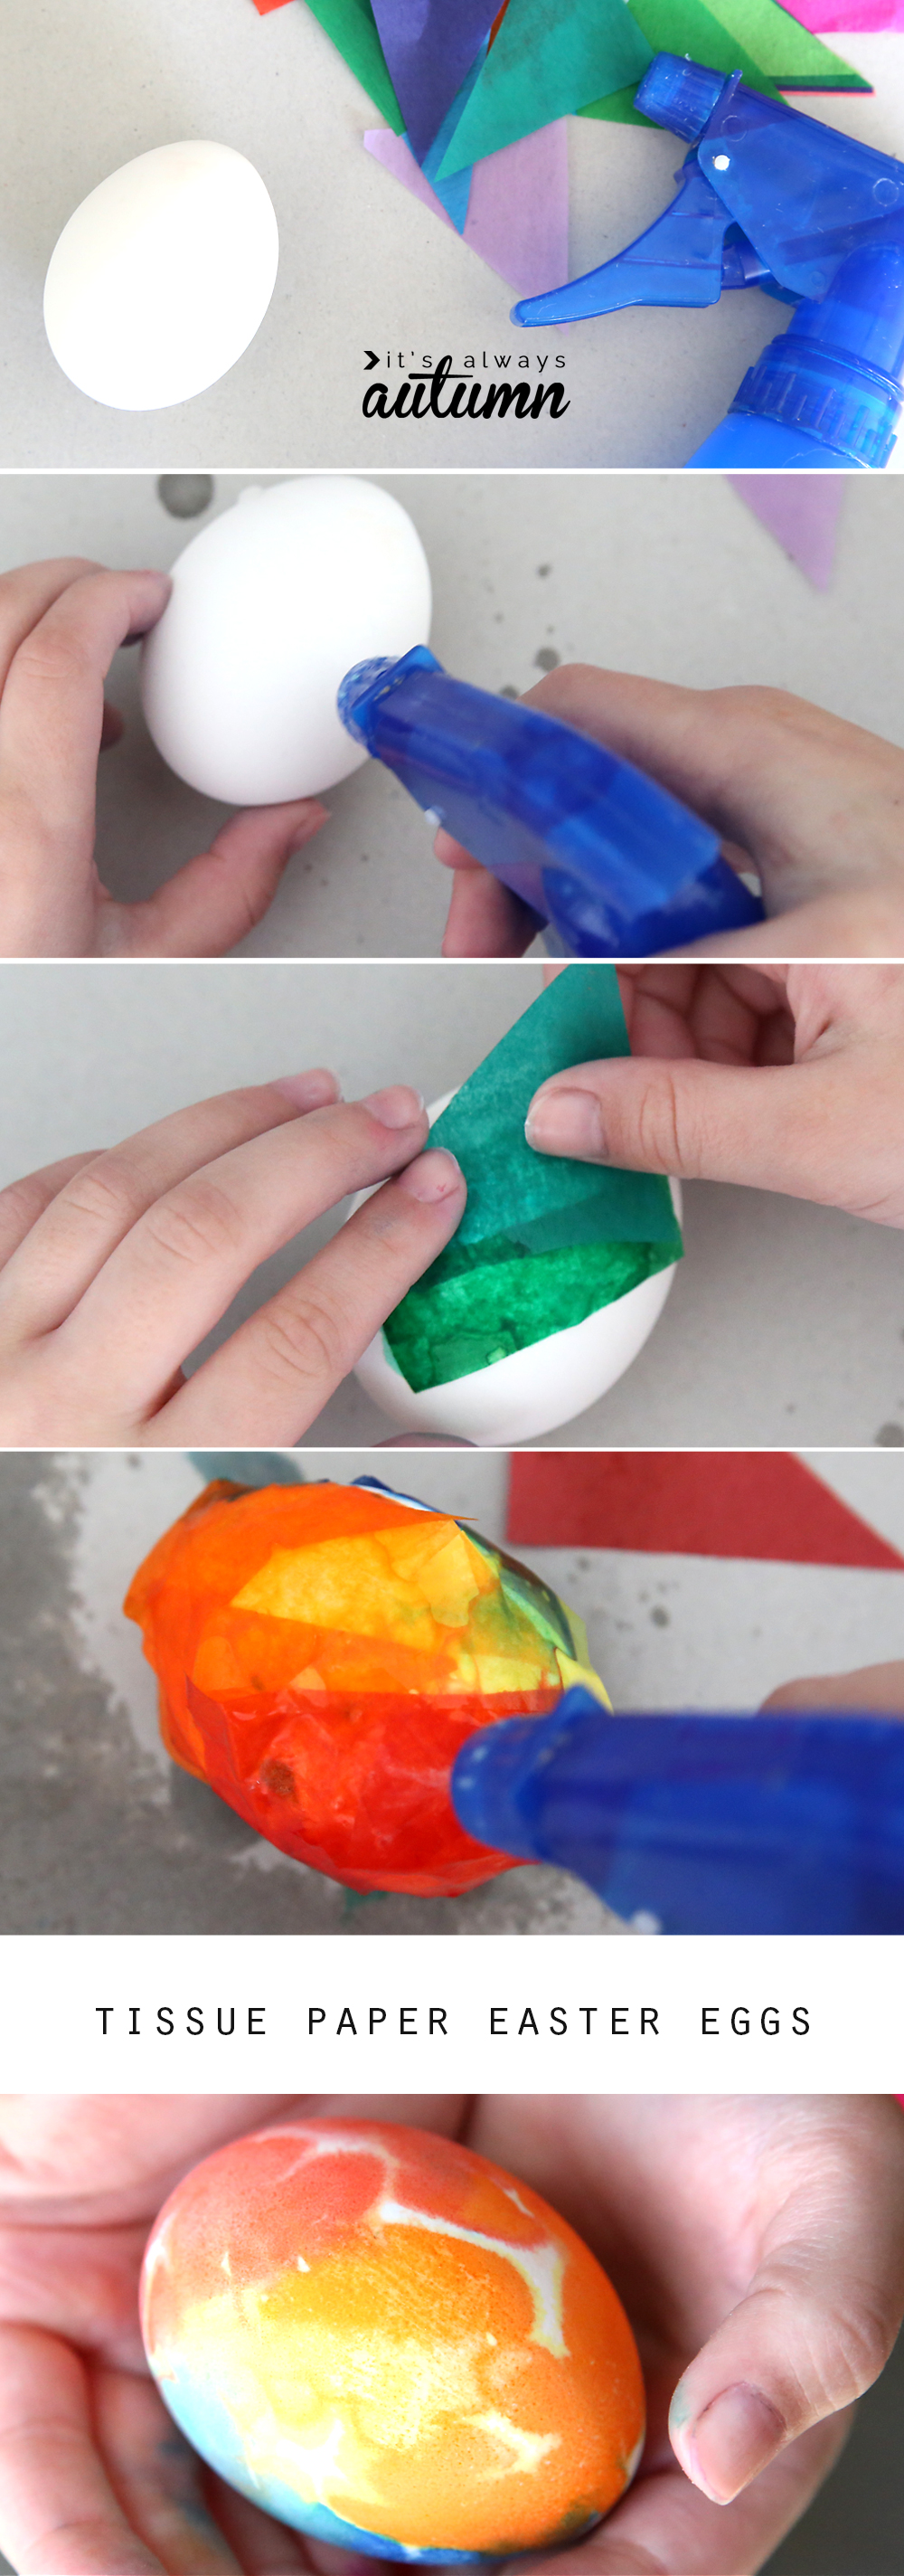 Hand placing pieces of tissue paper on Easter eggs sprayed with water